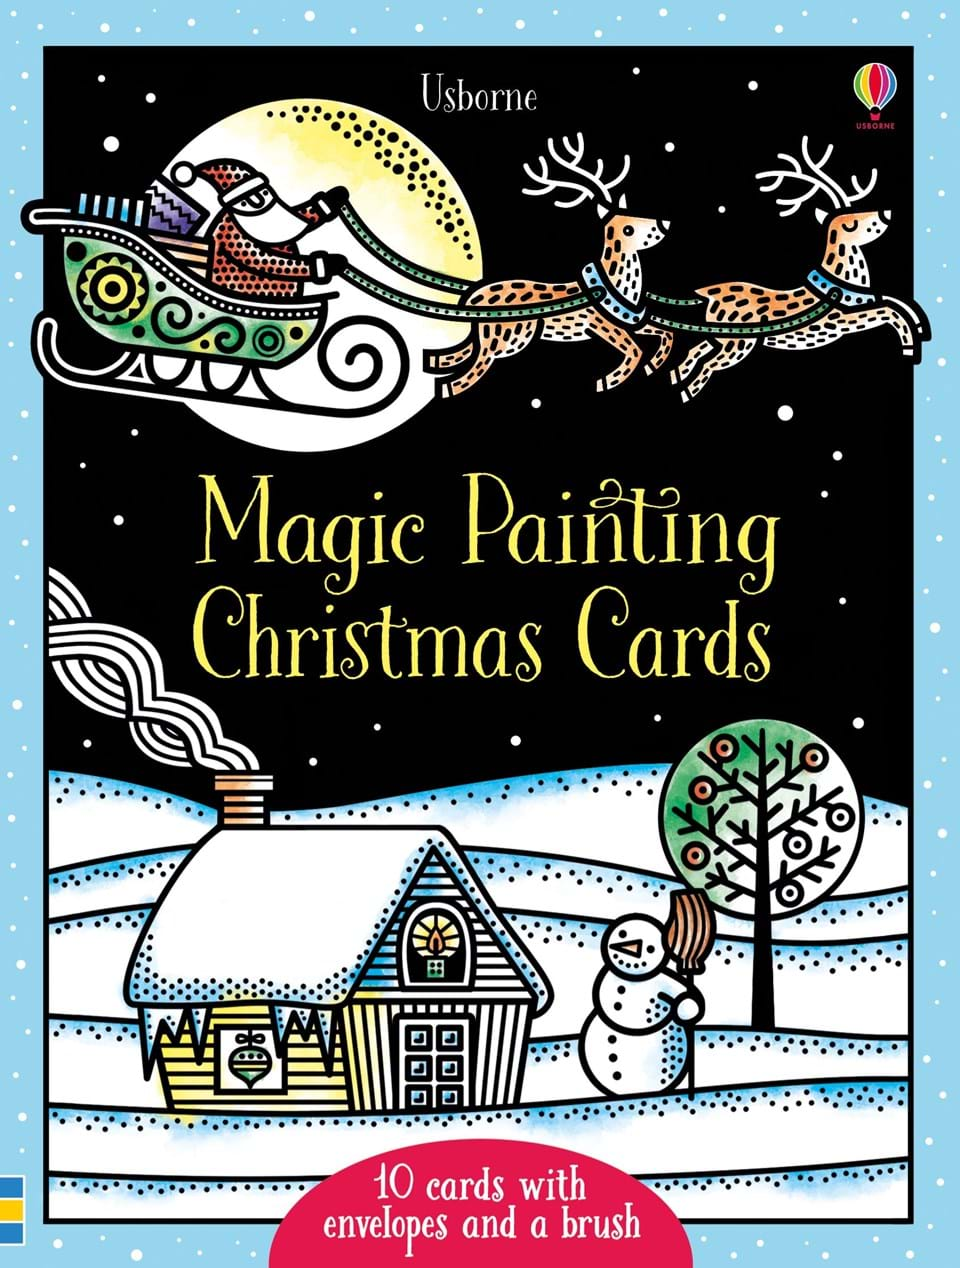 Magic Painting Christmas Cards At Usborne Books At Home